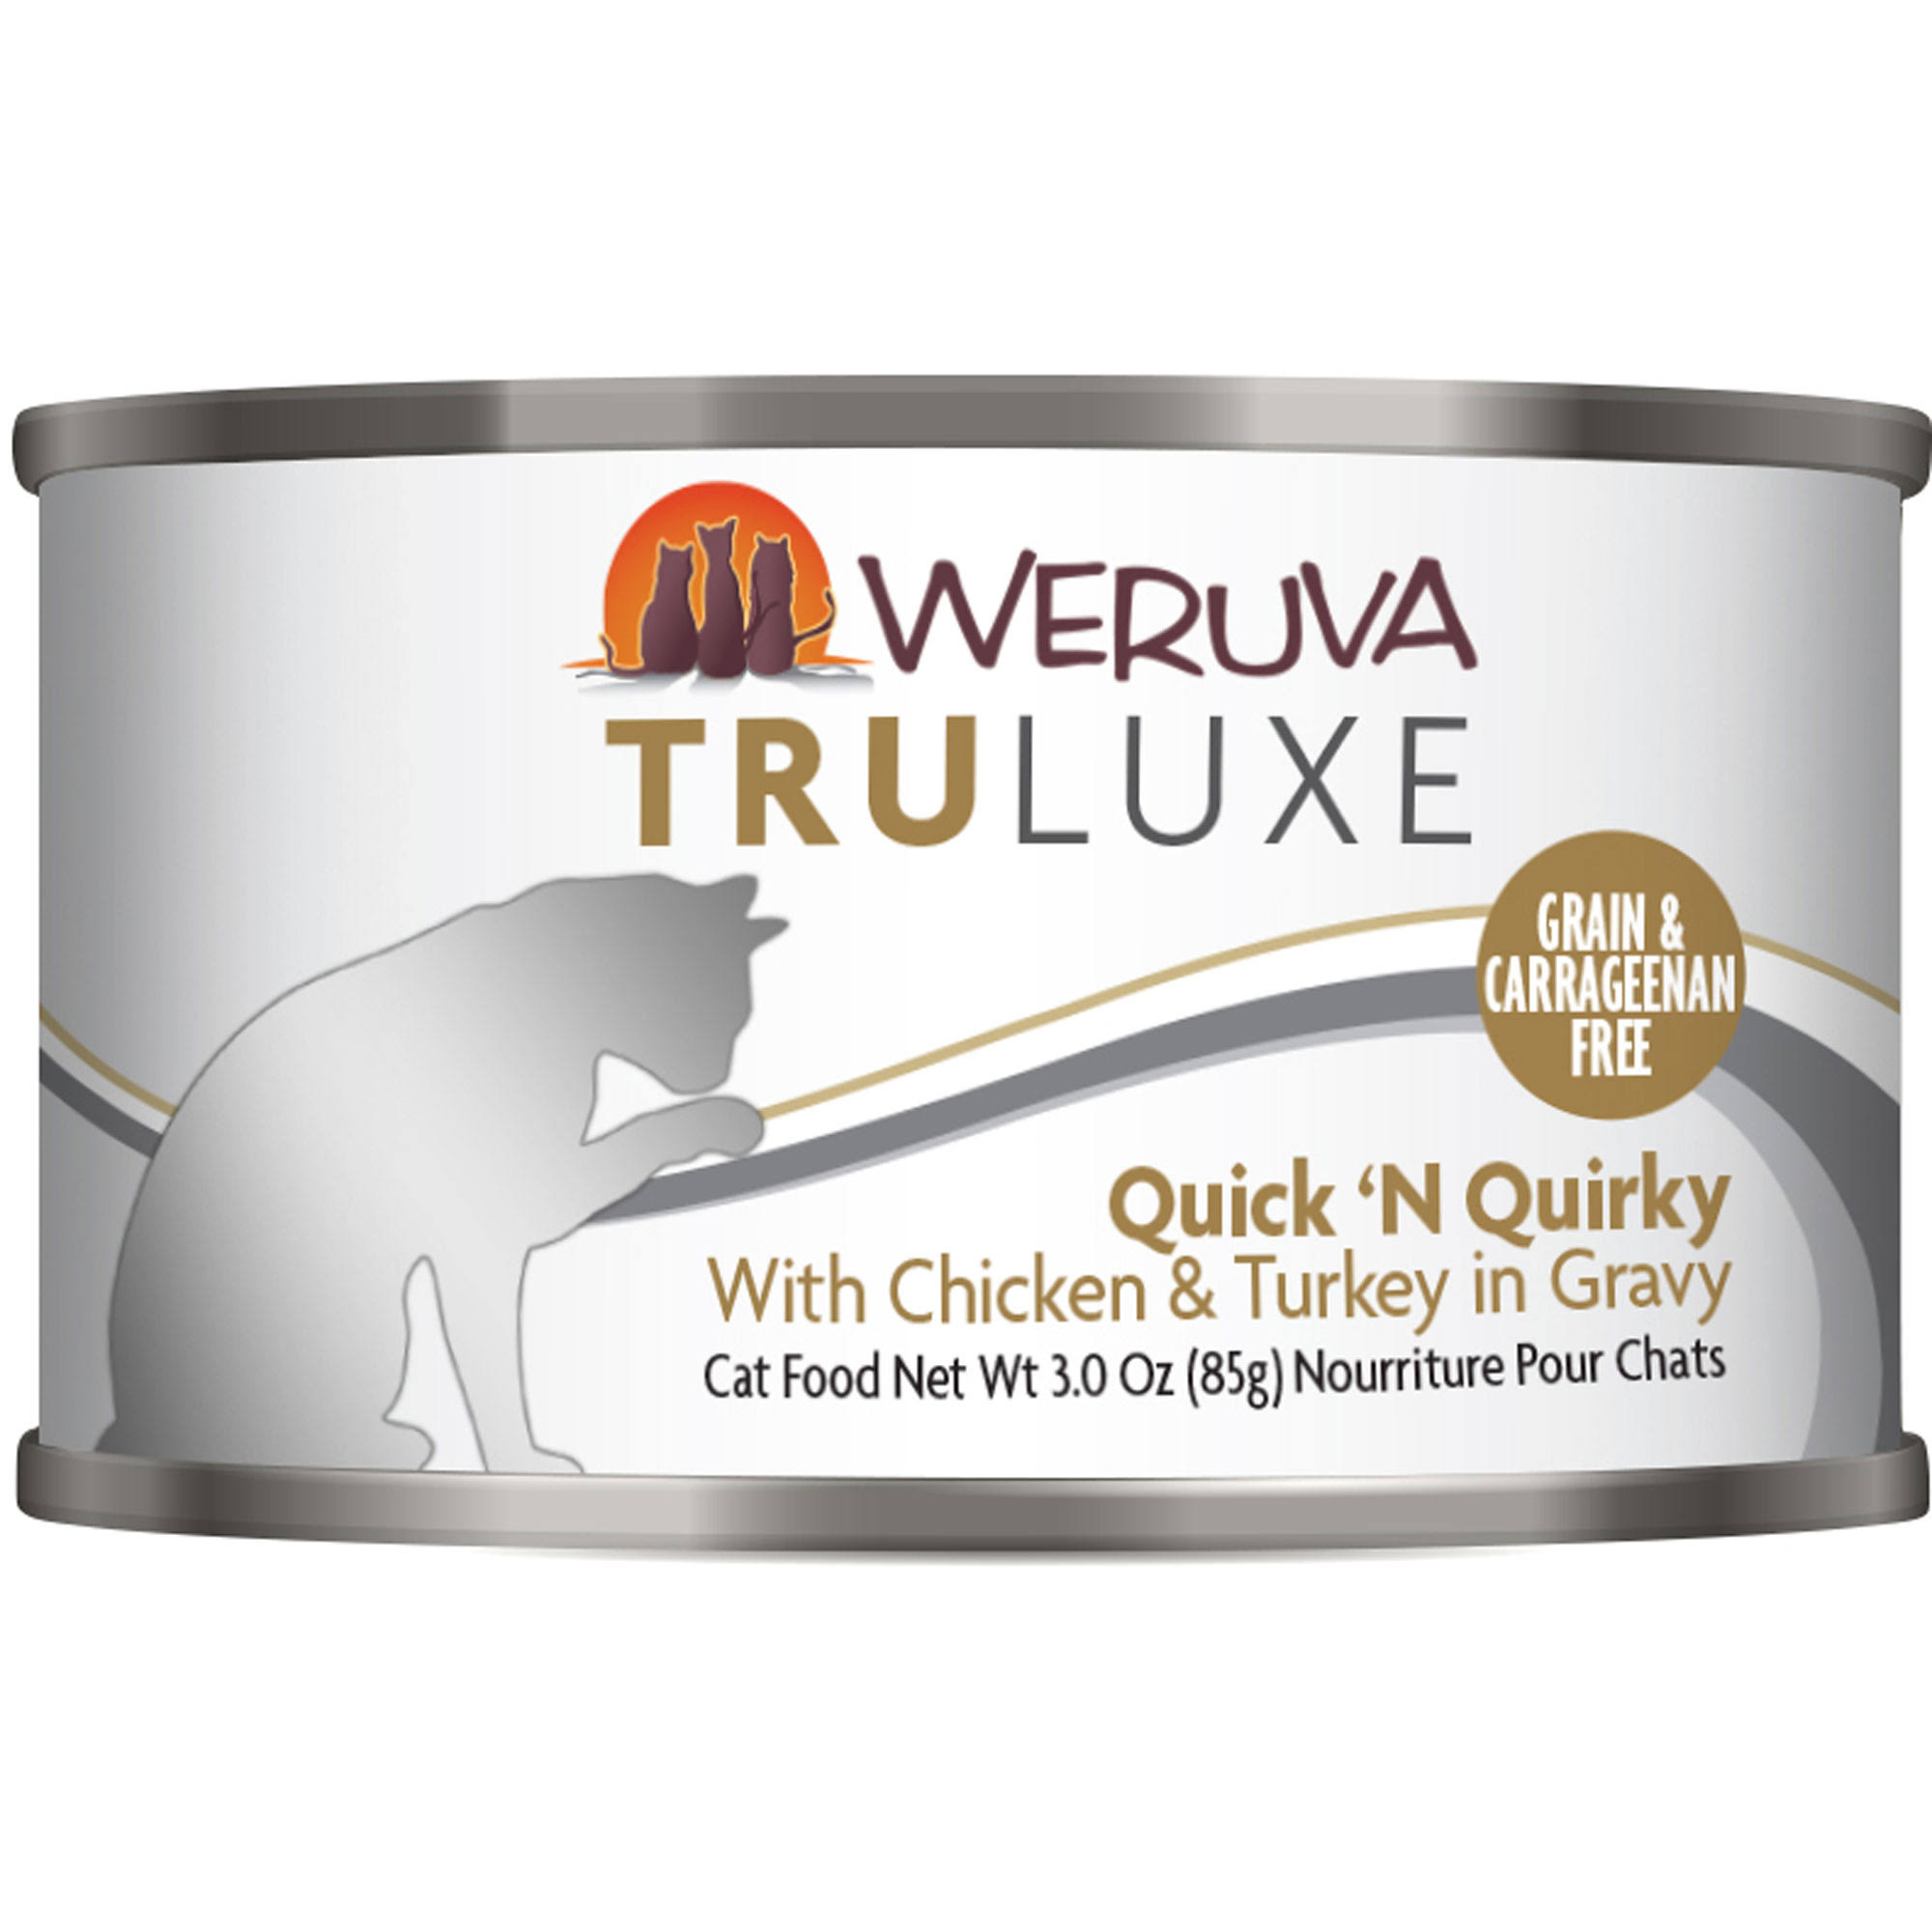 Weruva Grain Free Truluxe Canned Cat Food - Quick 'N Quirky, Adult